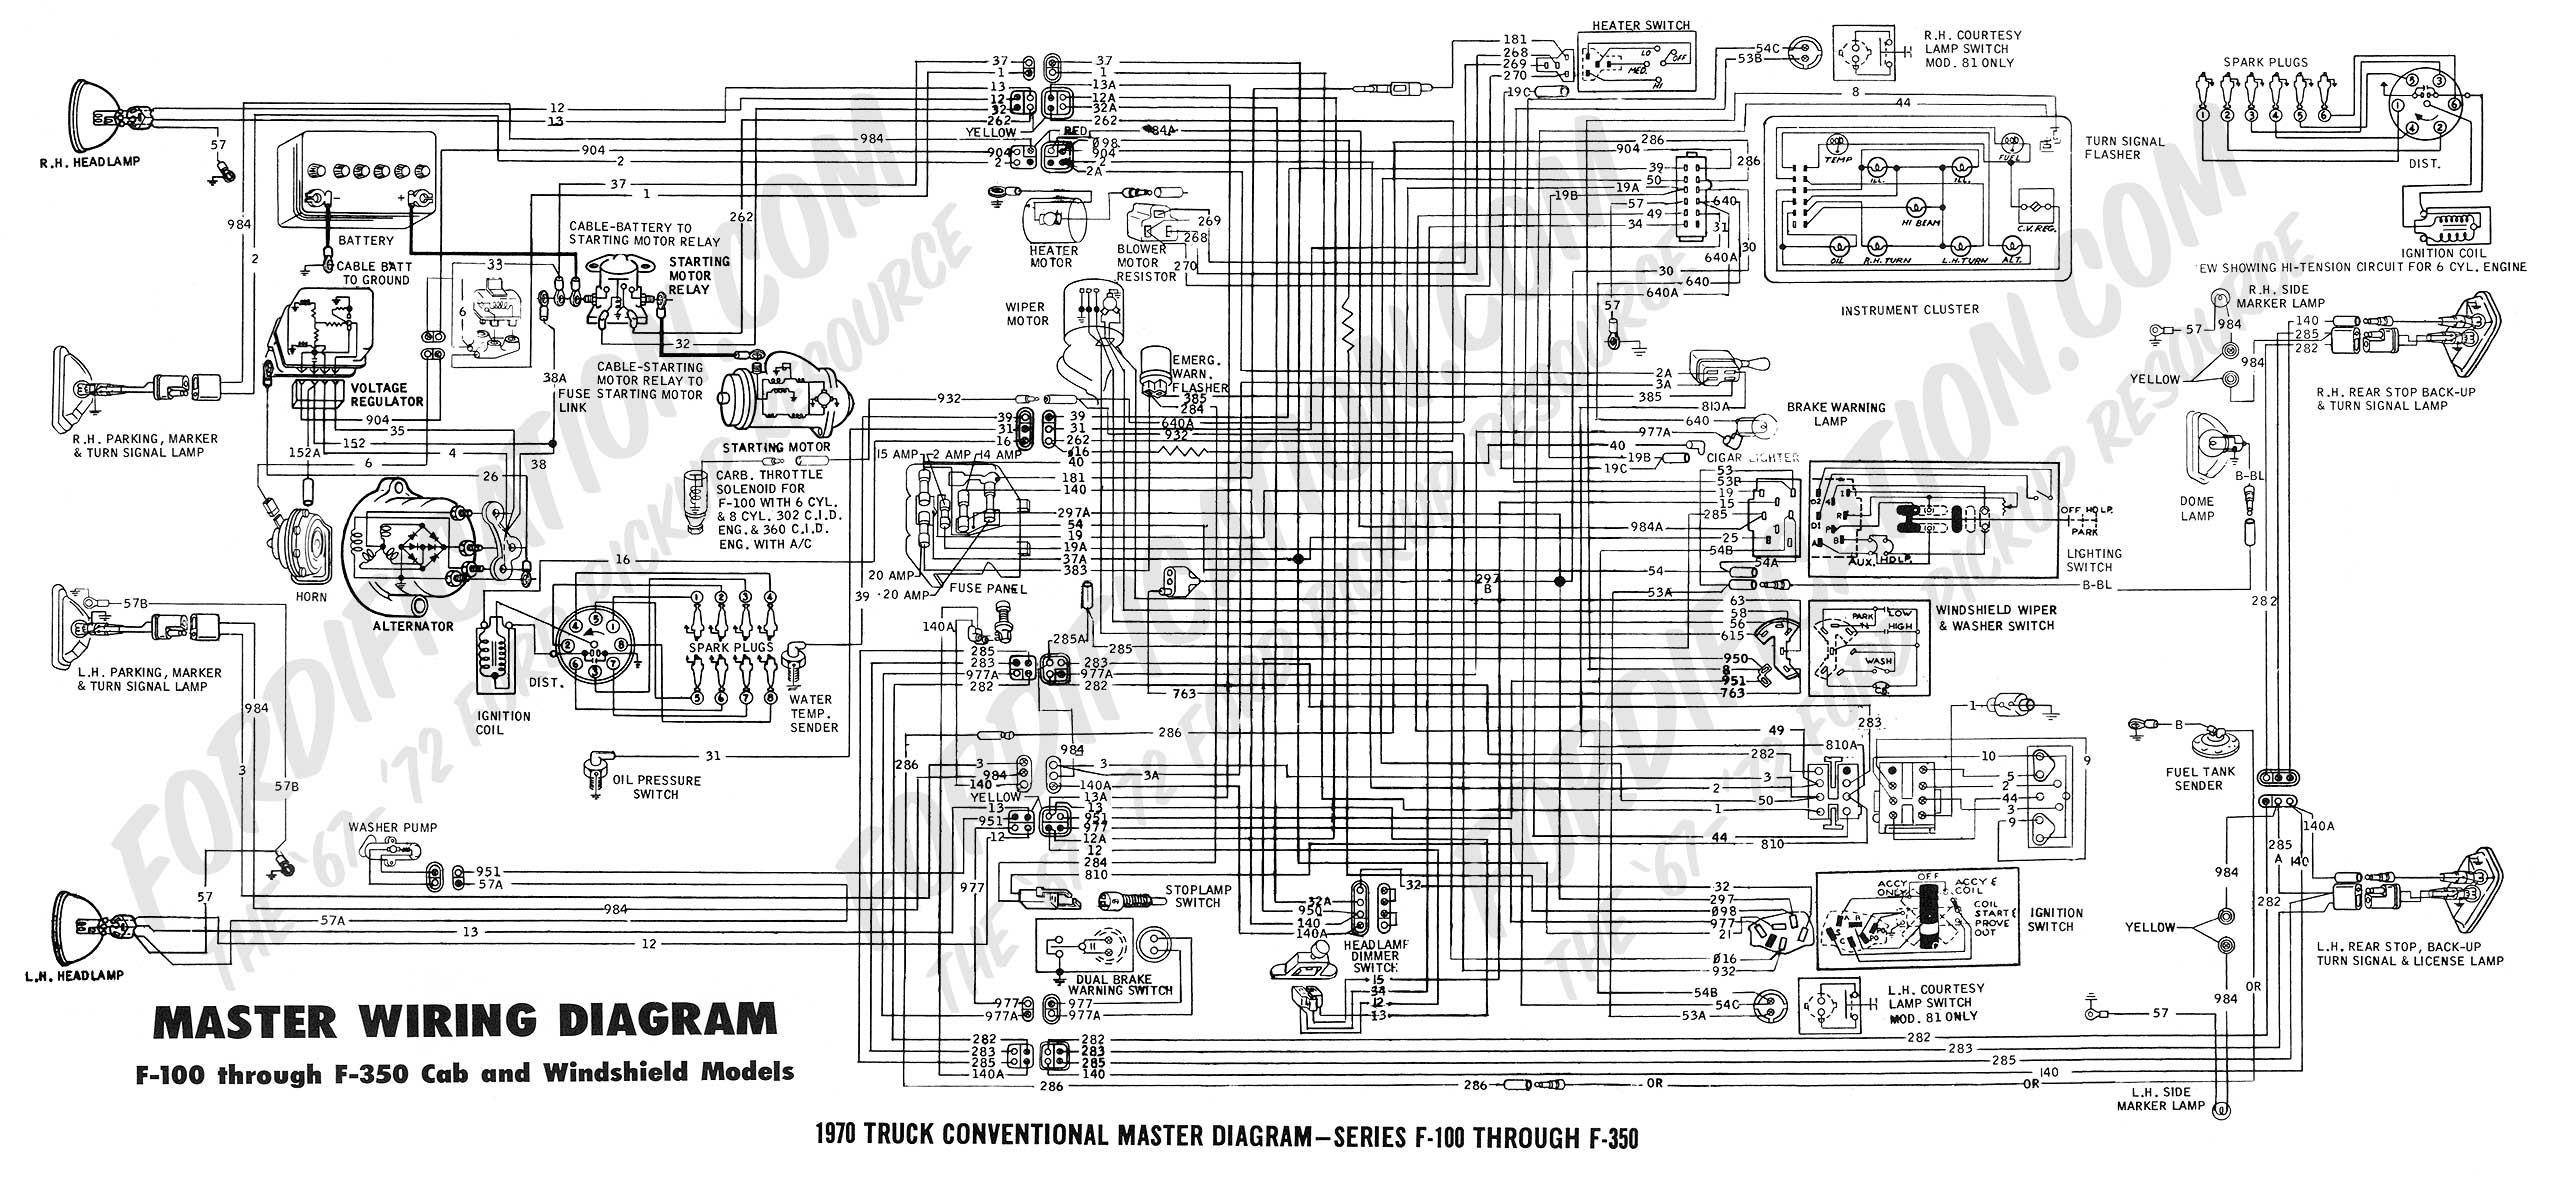 99 aerostar wiring diagram 2013 ford f350 wiring diagram 2013 wiring diagrams online